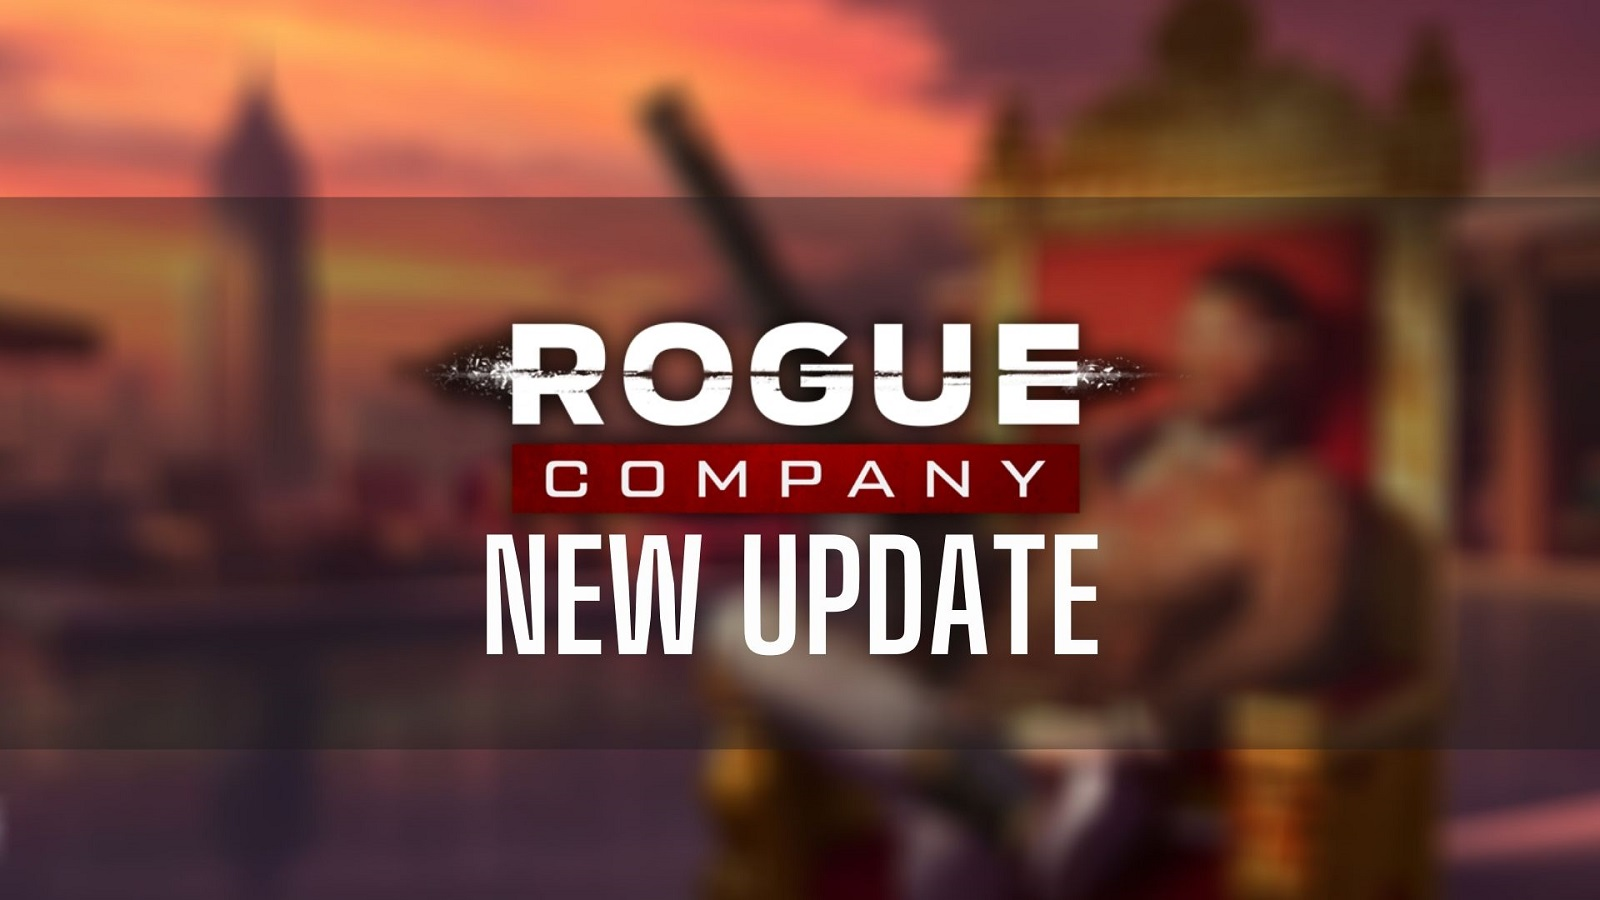 Rogue Company new update